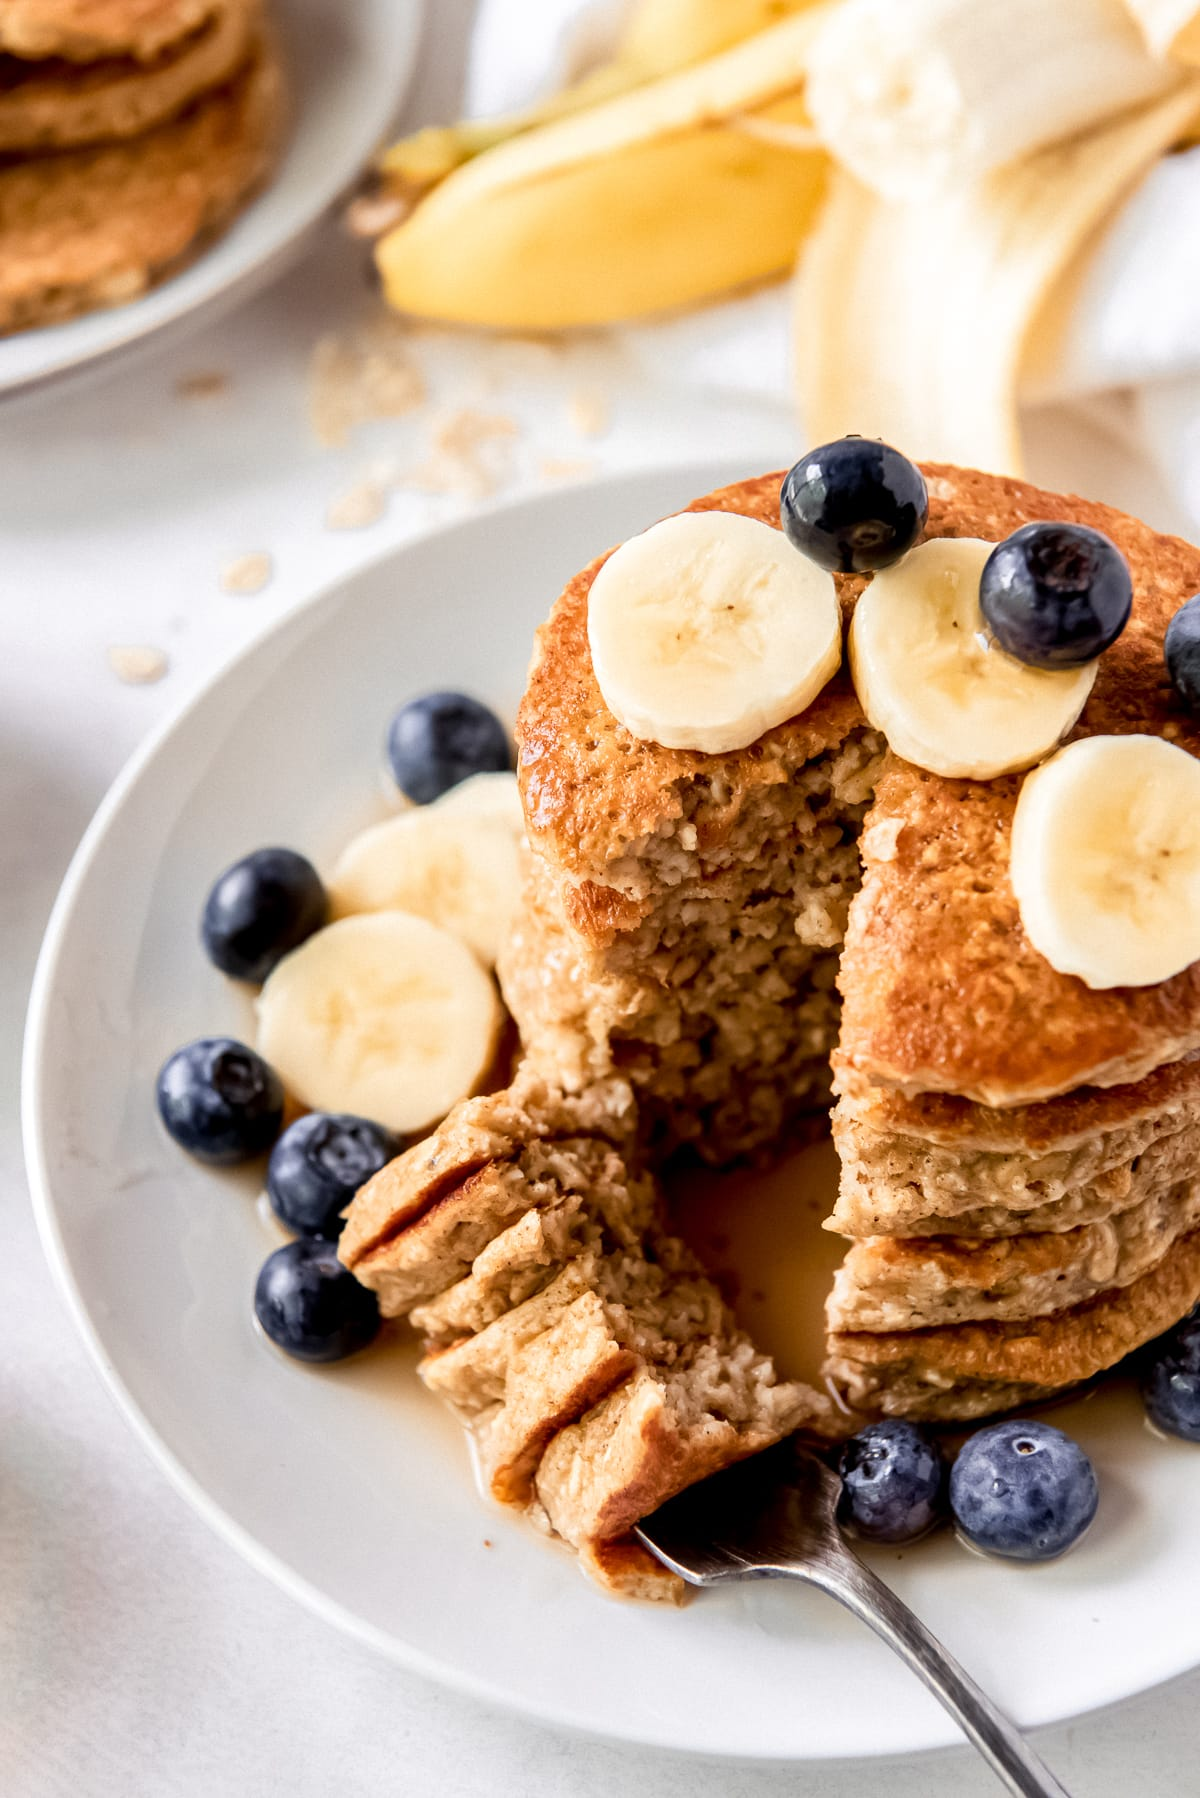 stack of banana oatmeal pancakes on plate with fork holding a bite